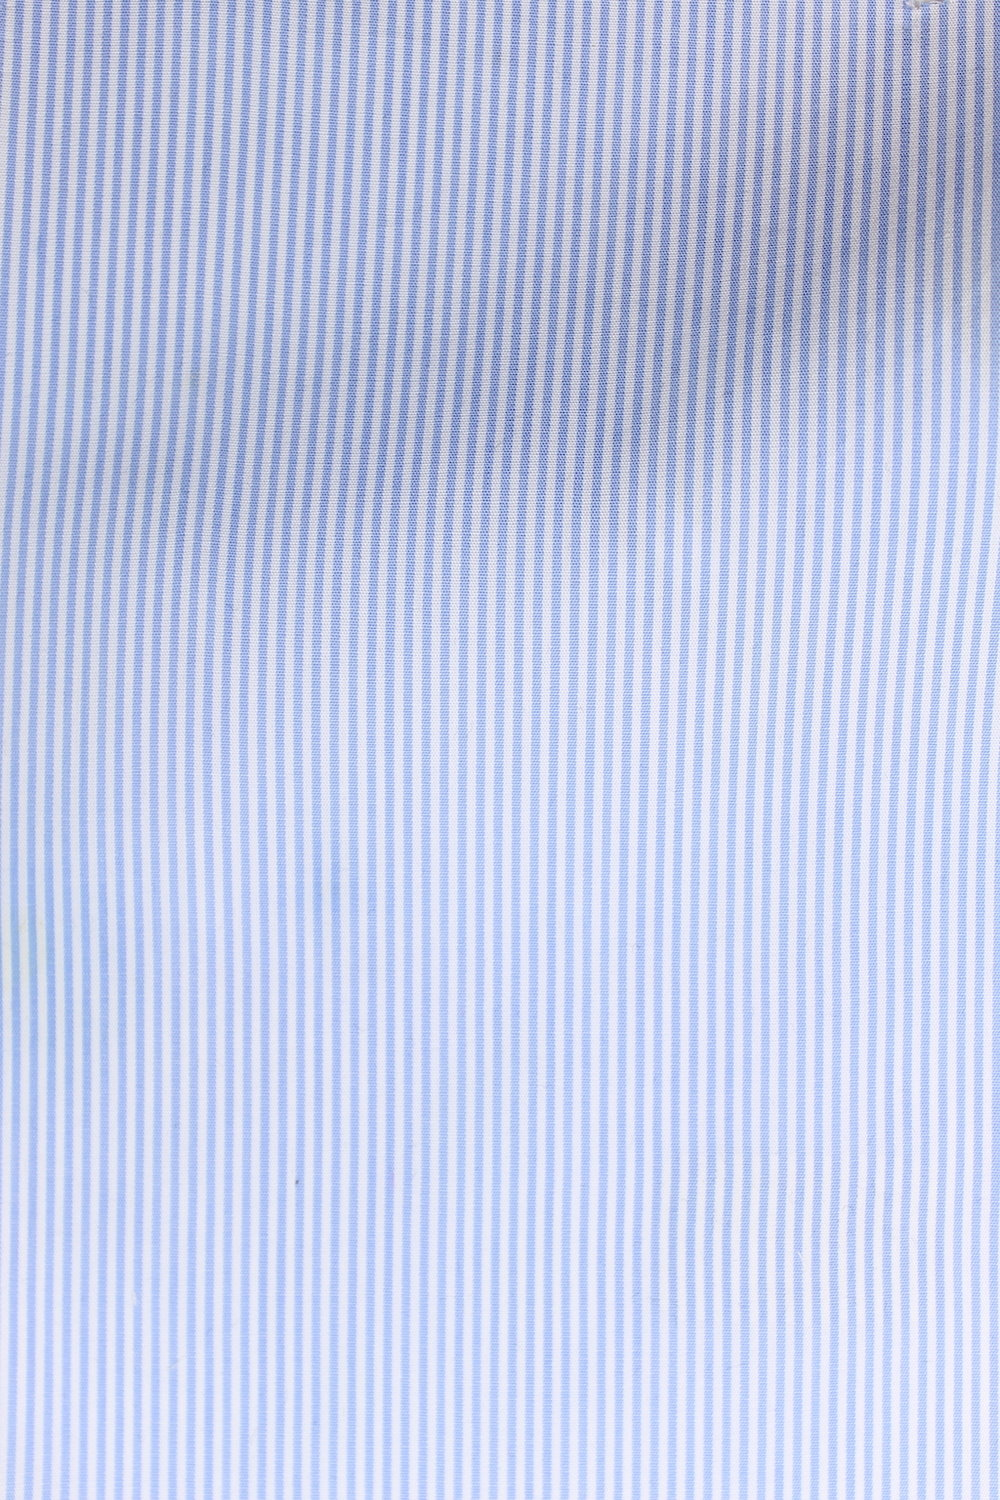 6549 Light Blue Microstripe.JPG